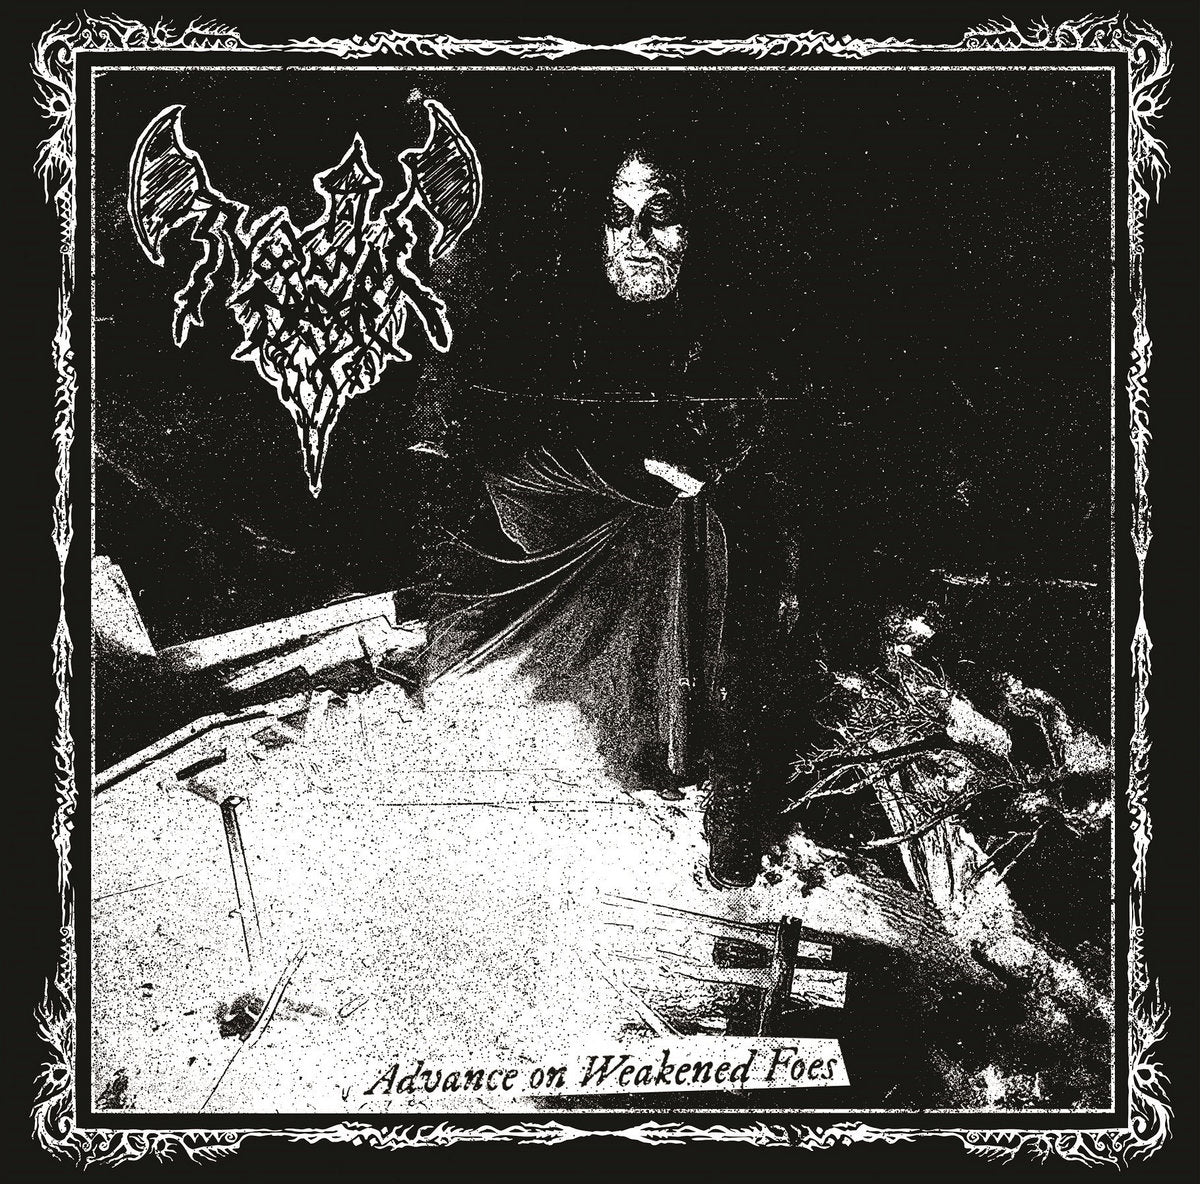 Nocturnal Prayer - Advance on Weakened Foes LP